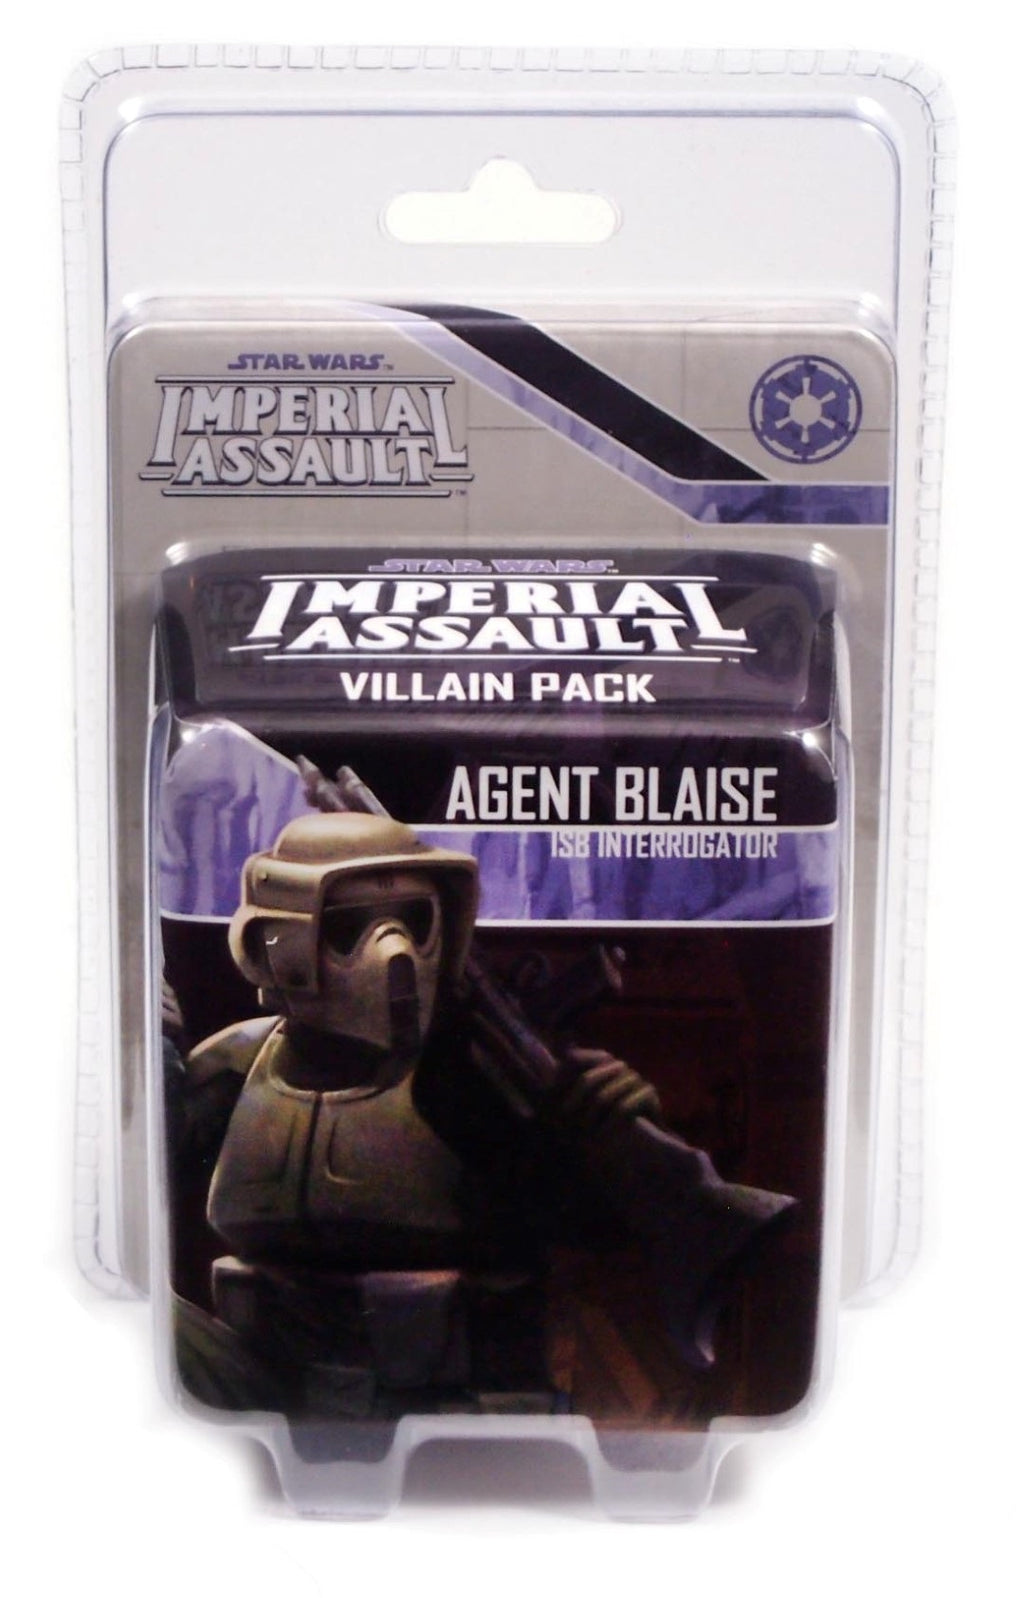 Imperial Assault, Agent Blaise Villain Pack